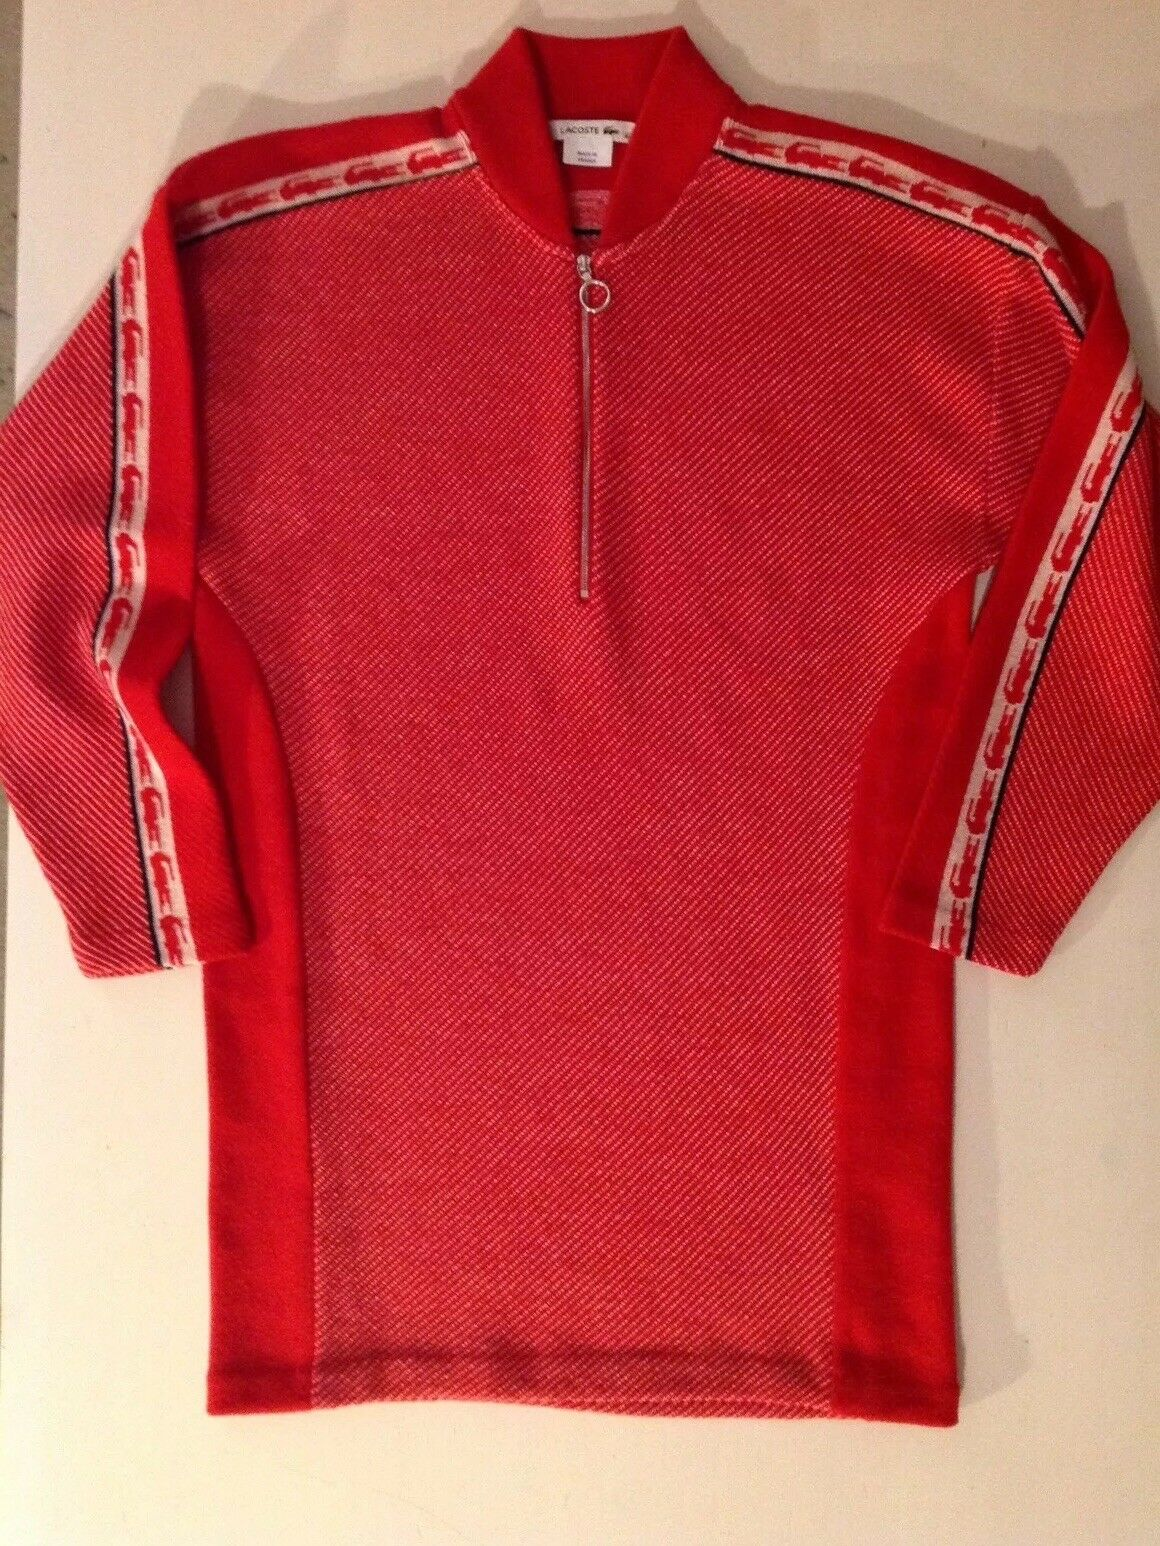 LACOSTE WOMEN'S RED PURE WOOL SWEATER DRESS SIZE 40 M or L